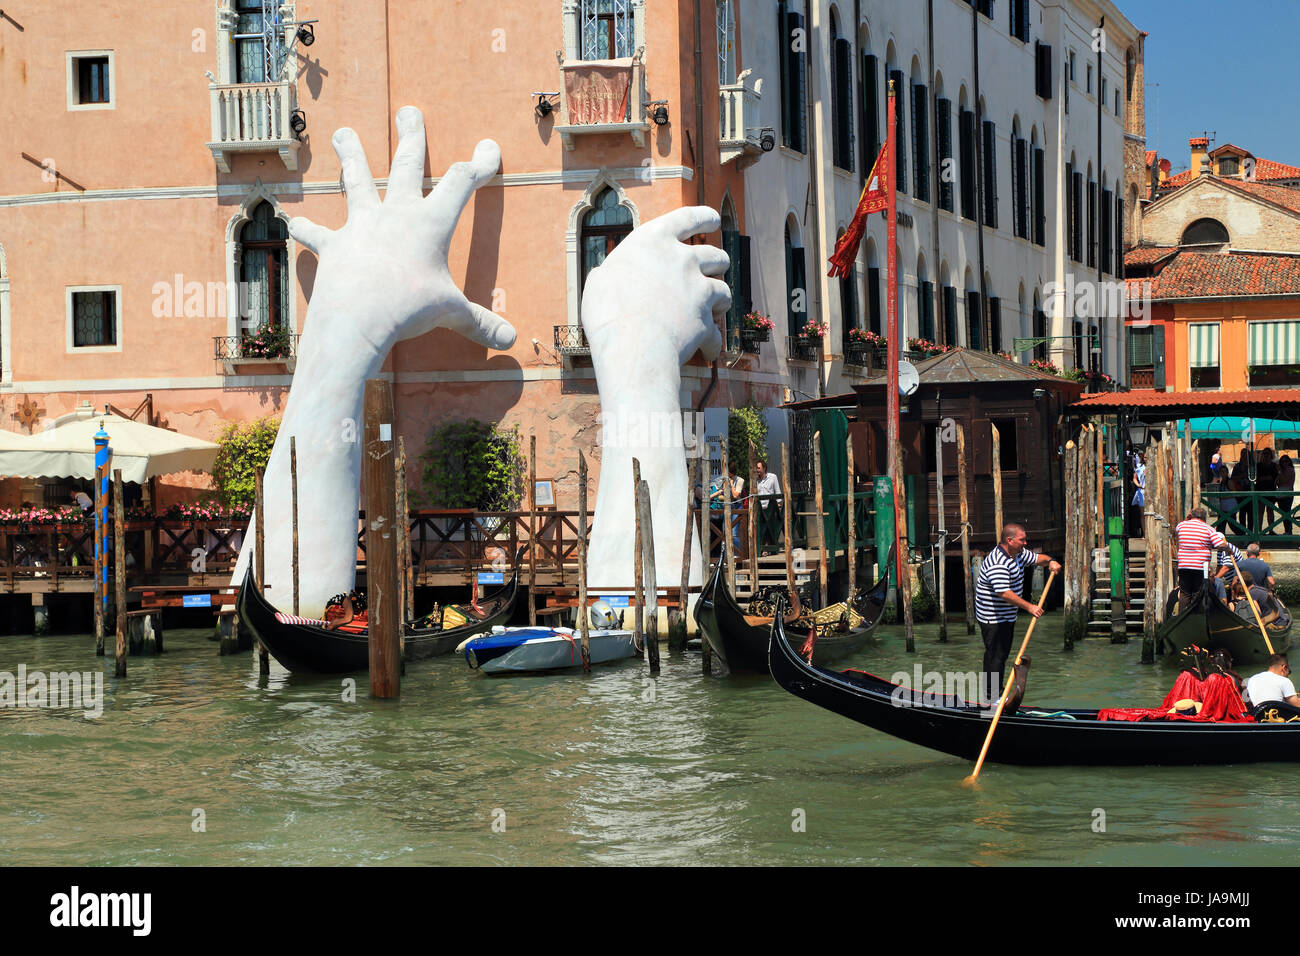 Giant hands sculpture in Venice by Lorenzo Quinn - Stock Image